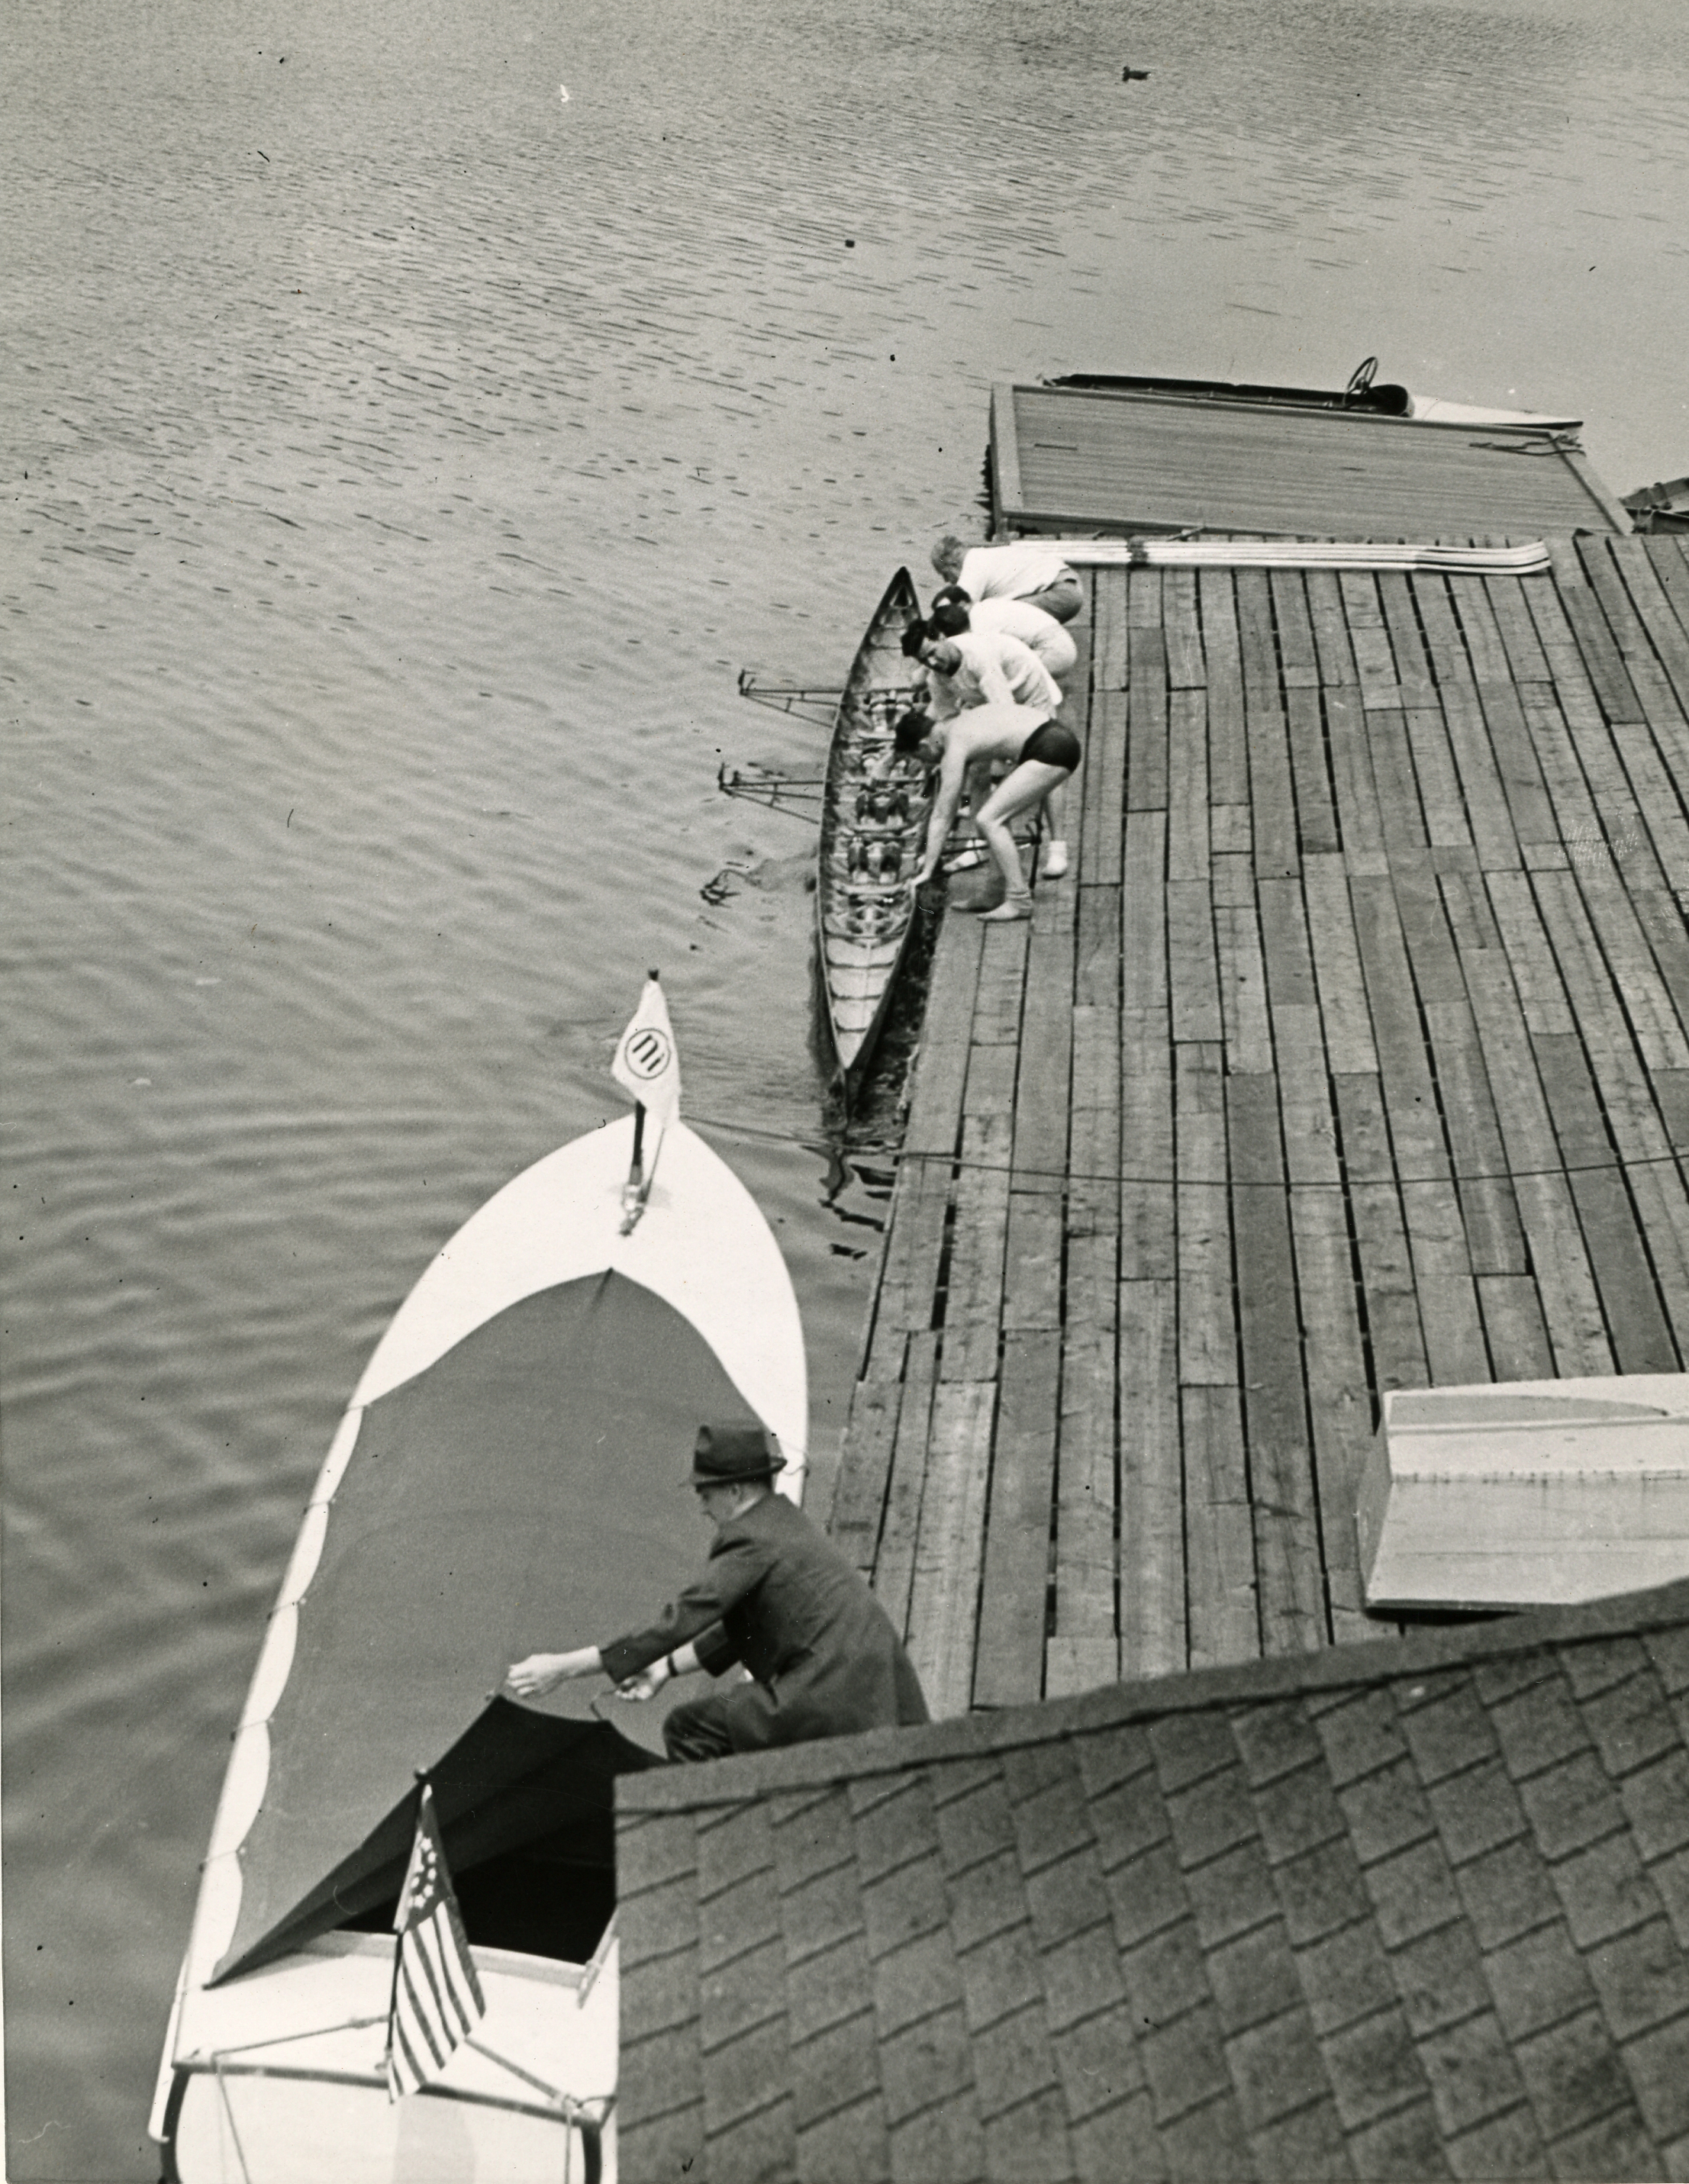 The White Swan and a rowing shell at the Company dock on the Charles River